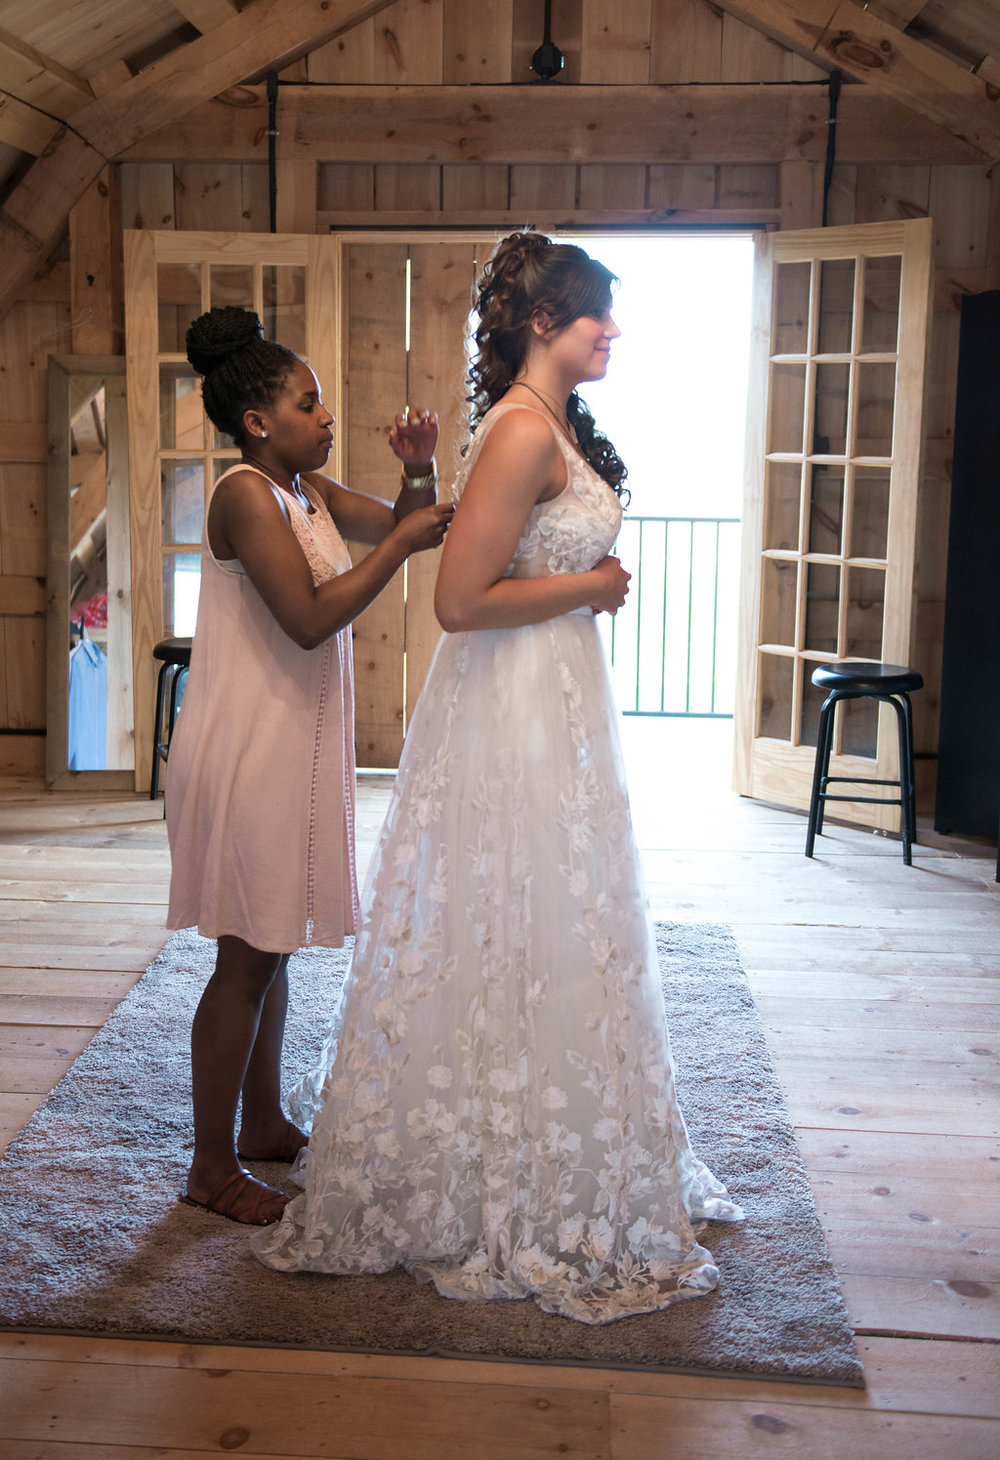 Detroit Bridal House - Hi! I'm Kristin, the owner and creative director of Detroit Bridal House. That's me in the photo on the left, pretending to be a fairy-godmother. Detroit Bridal House is a little girl's dream come true. I always dreamt of opening a bridal shop that fed the creative soul, but was also a comfortable and enjoyable experience.Shopping at Detroit Bridal House is more than shopping for a wedding gown, it's a Detroit experience. Shopping at Detroit Bridal House is time spent with family and friends and making memories that will last a lifetime. The collections carried in Detroit Bridal House are unique and fresh, which makes shopping just a little more fun! I can't wait to meet you!